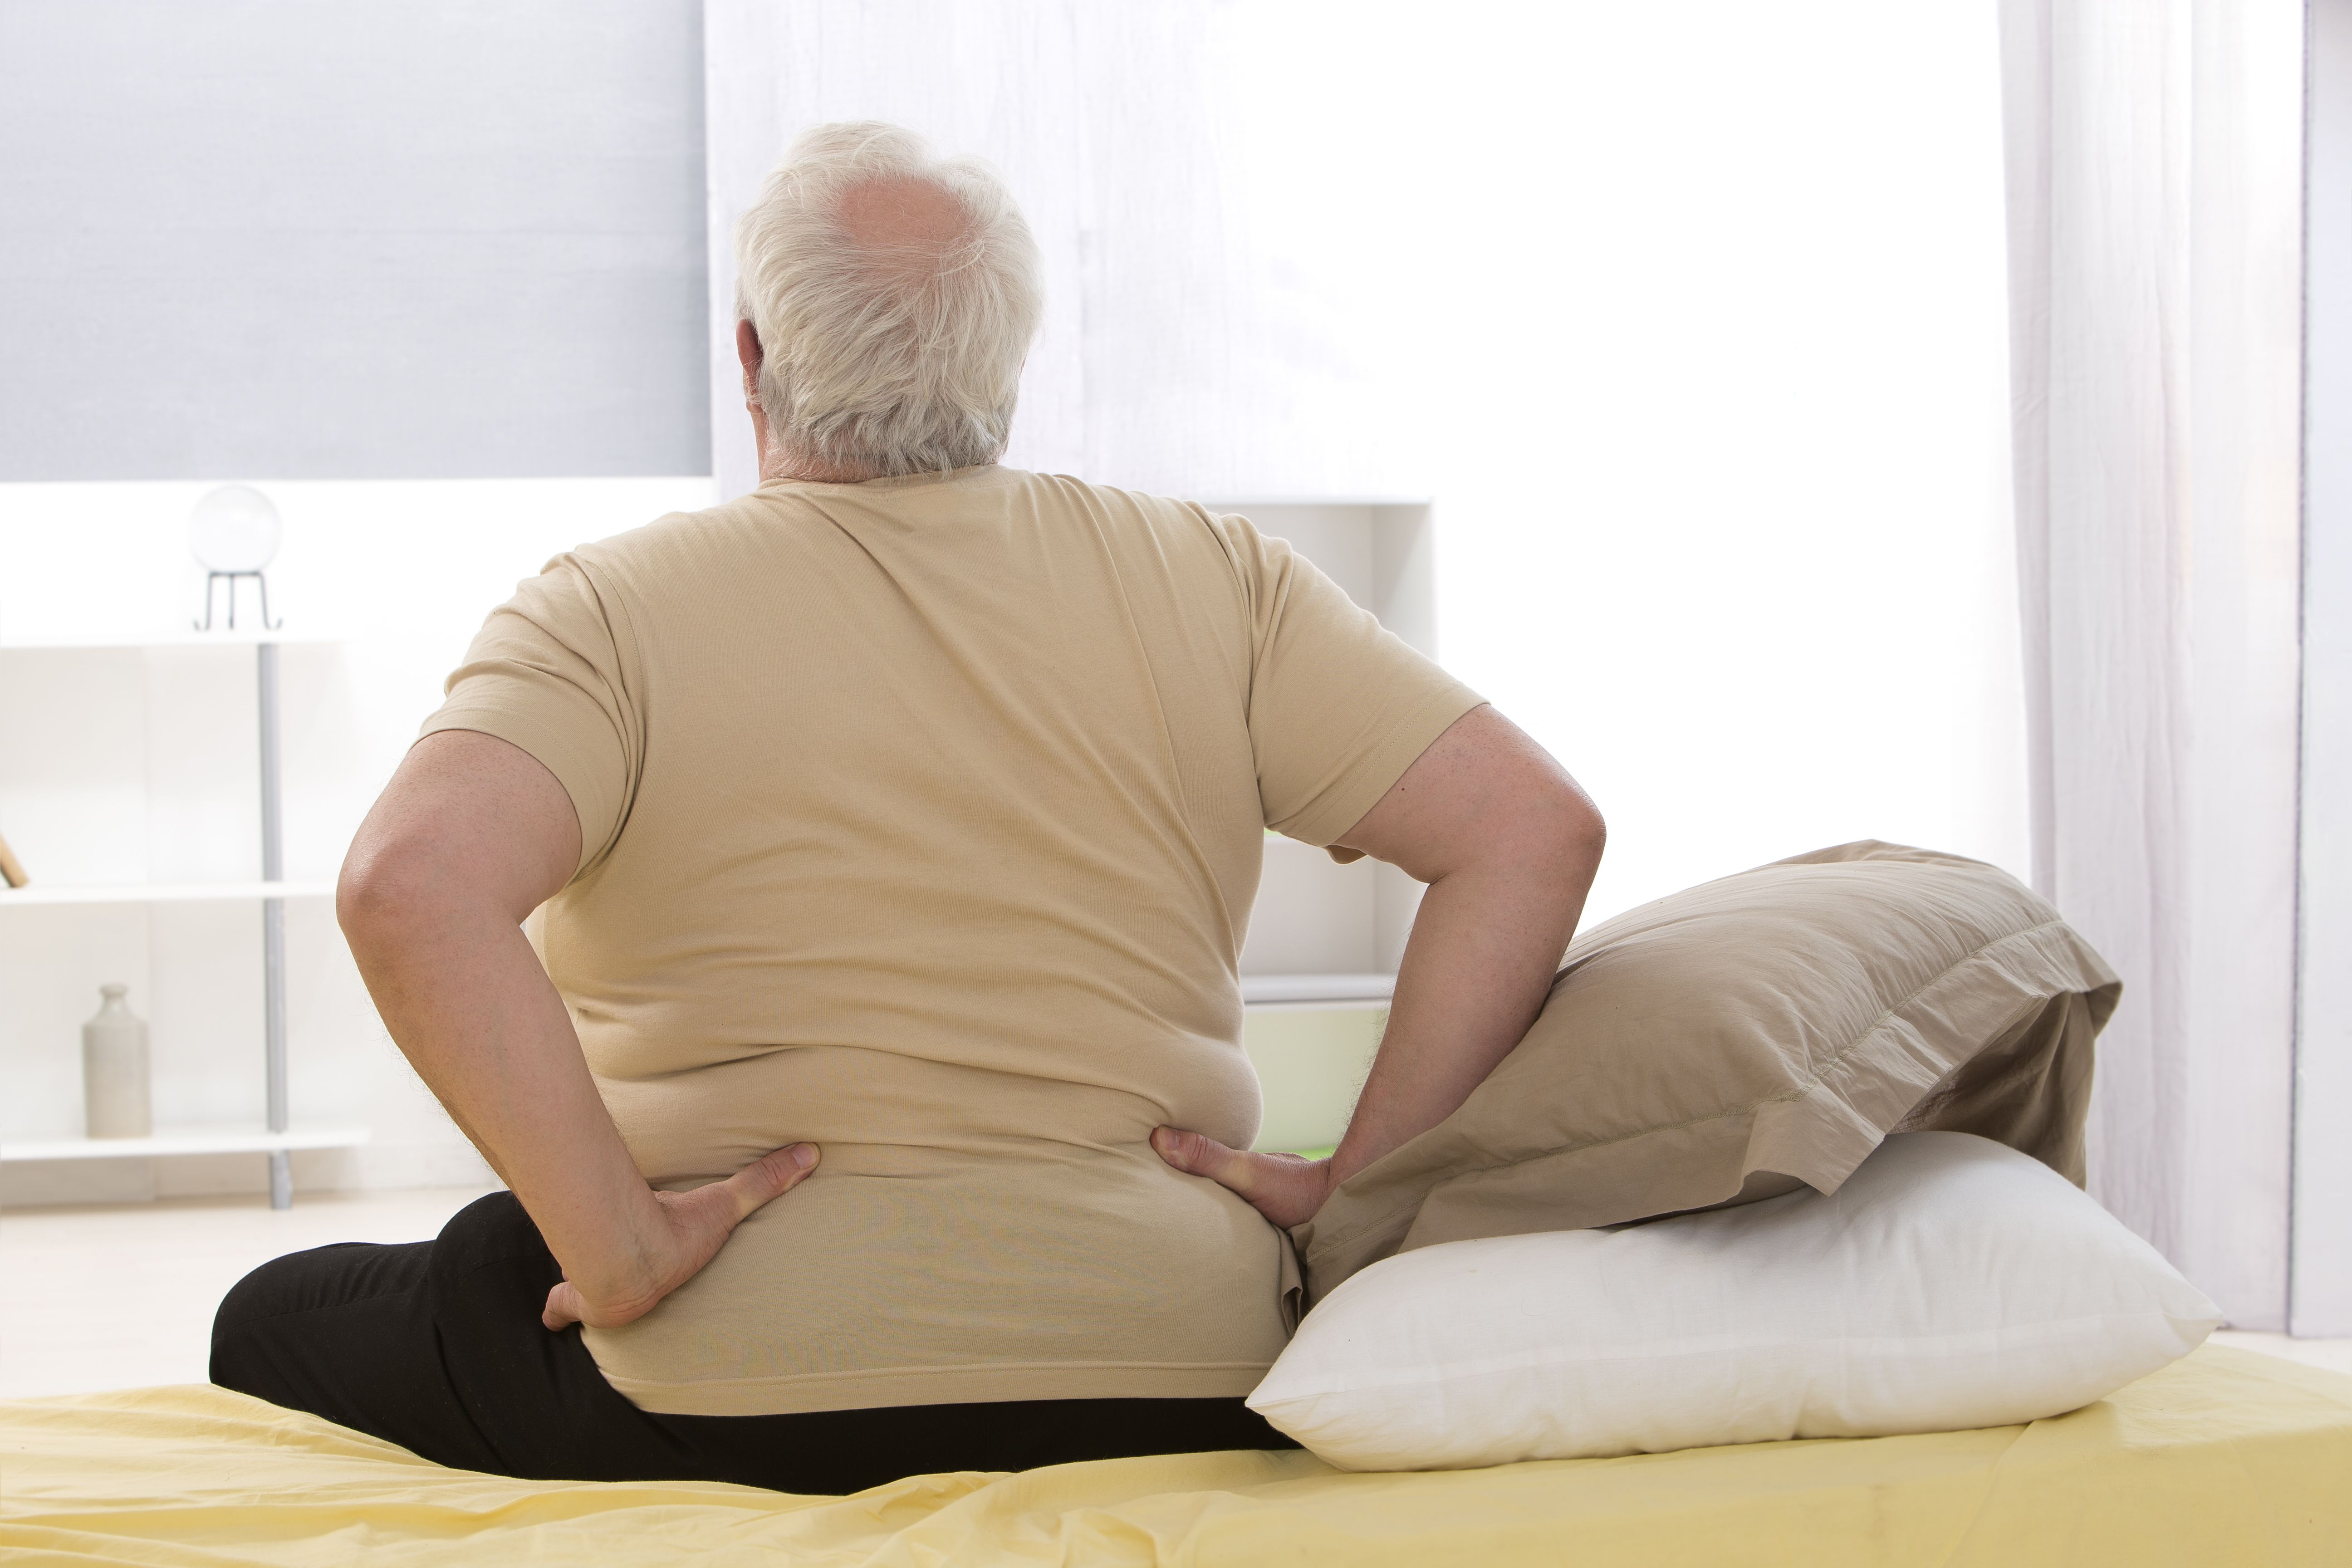 Overweight Mature Person With Lower Back, Lumbar Pain